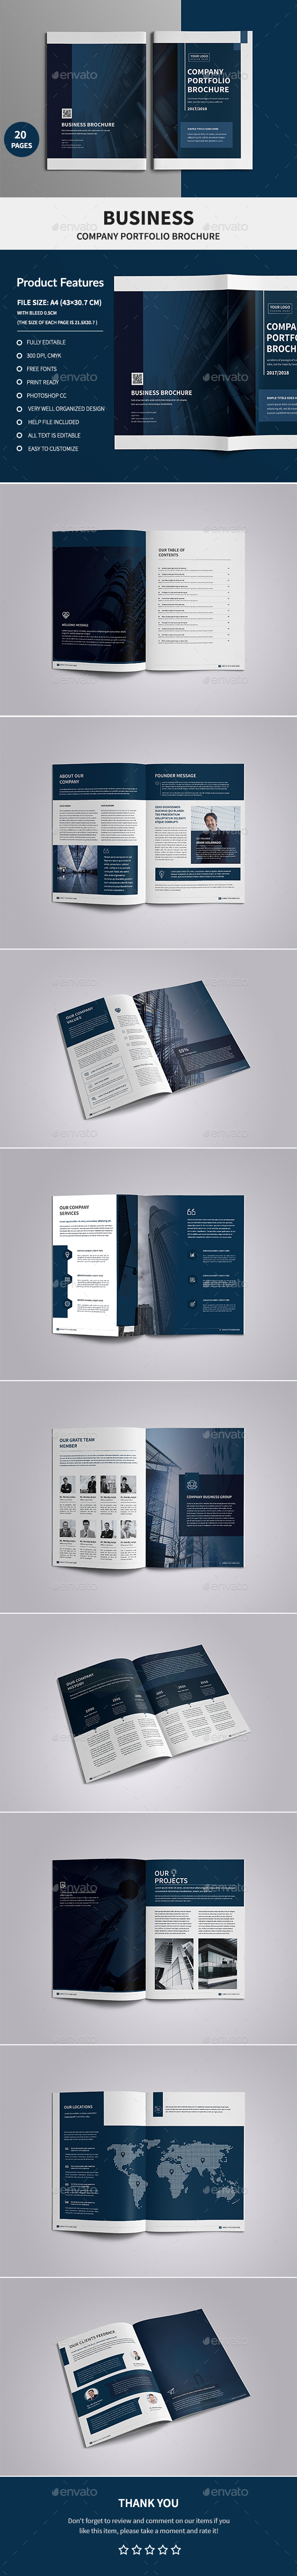 Corporate Company Profile Brochure - Corporate Brochures